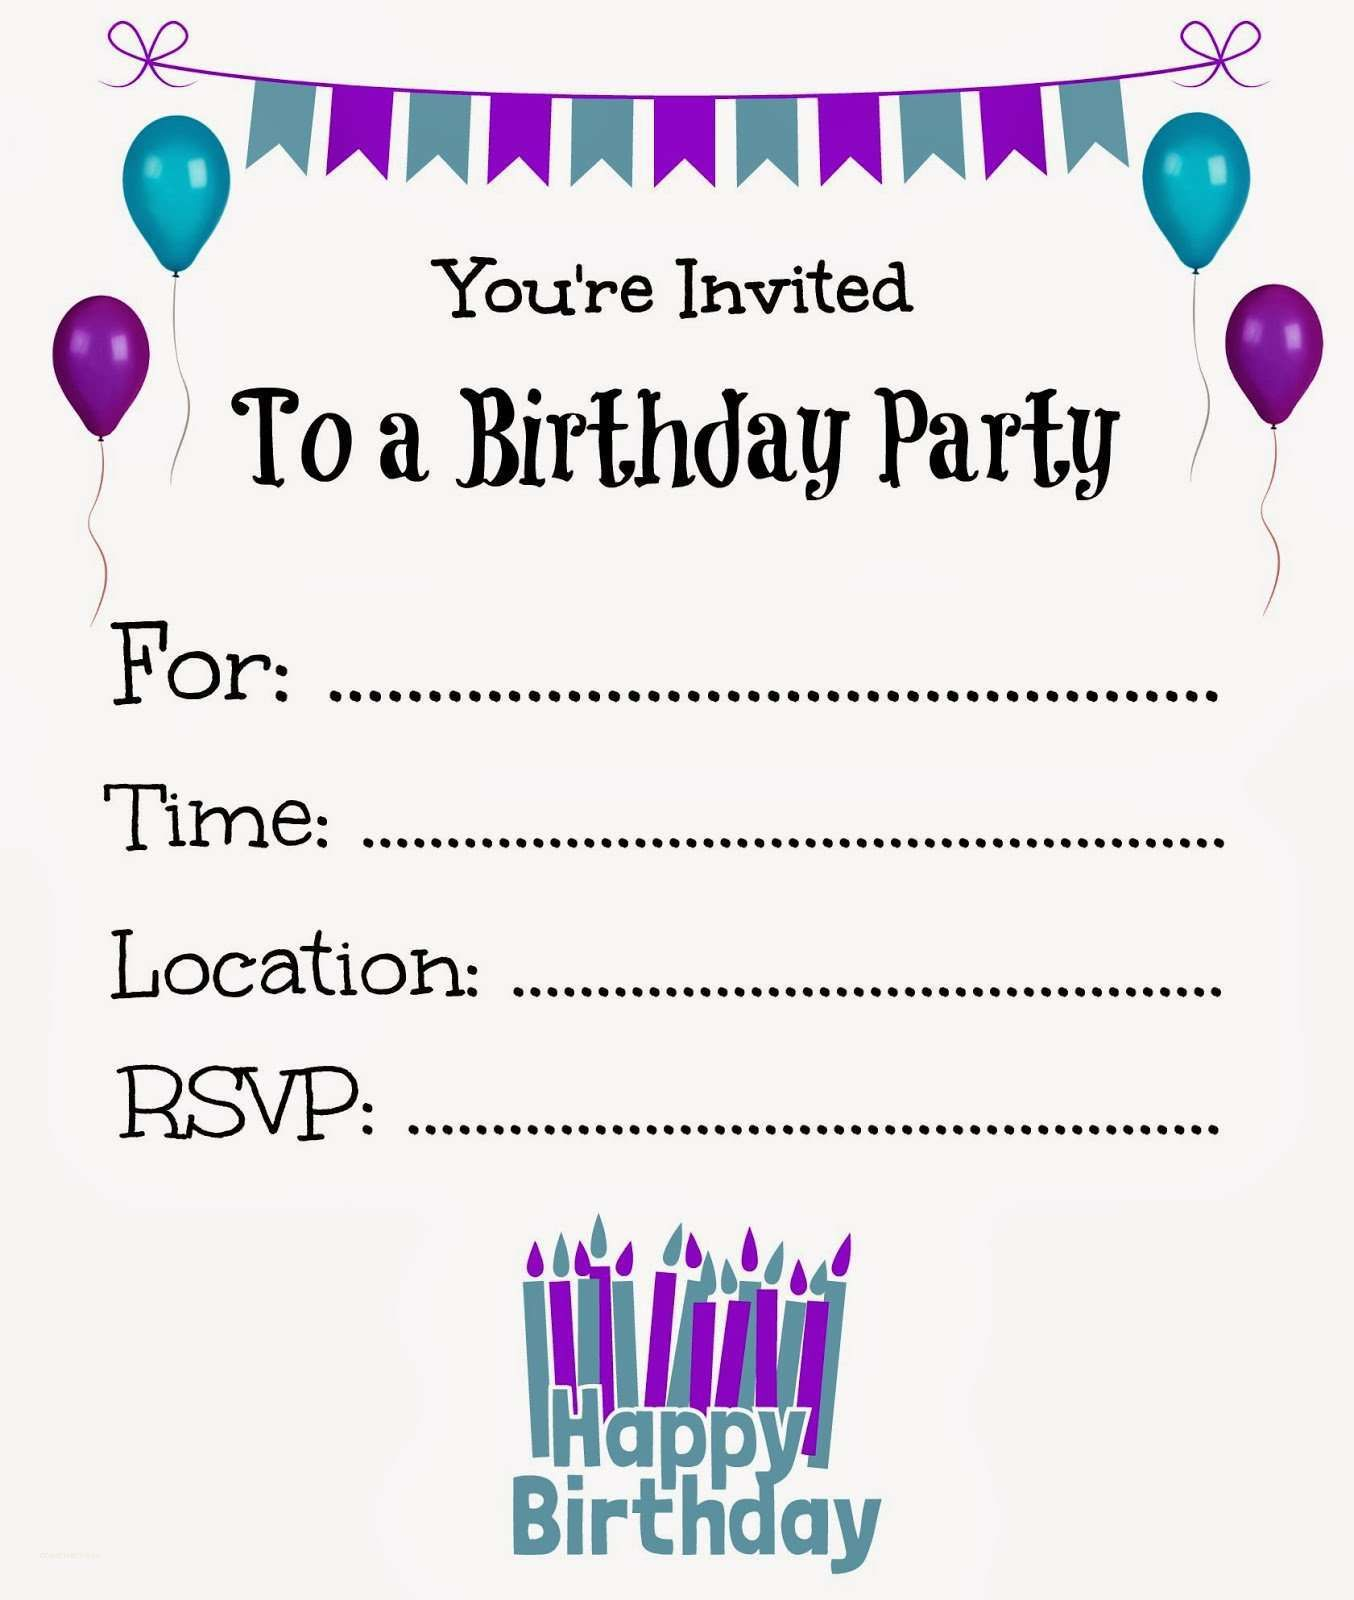 Birthday invitations free online printable selol ink birthday invitations free online printable filmwisefo